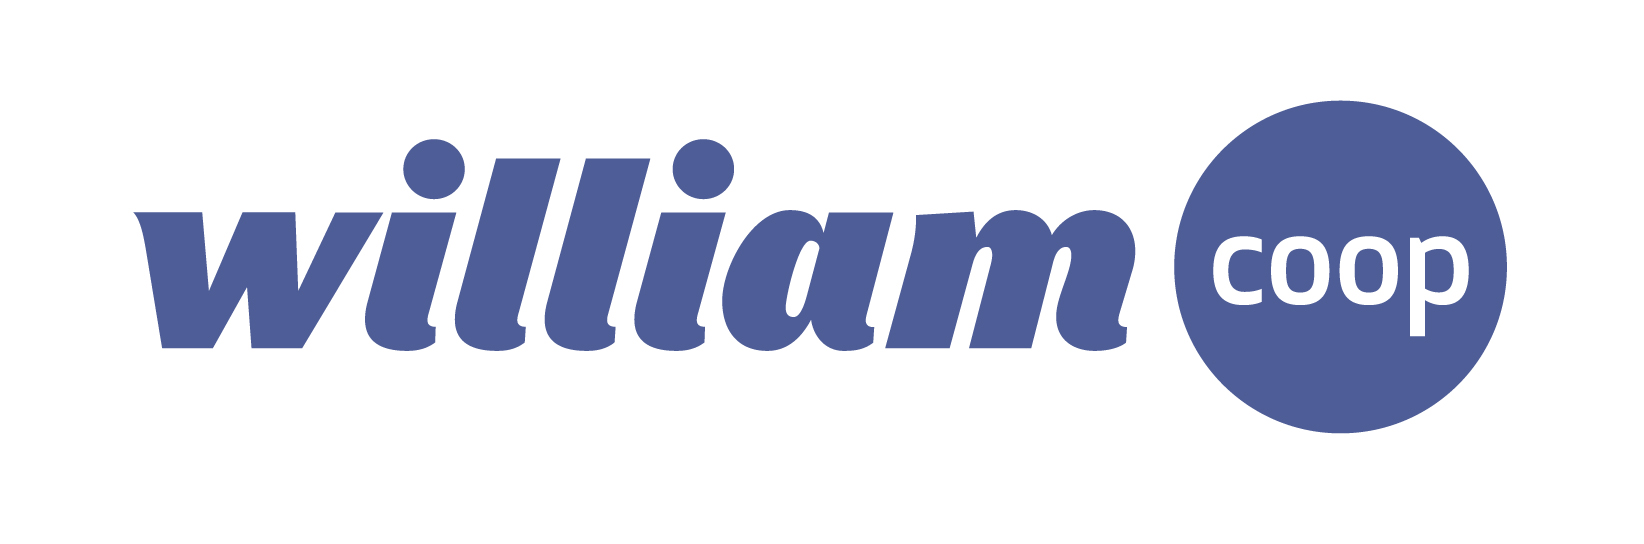 logo_william